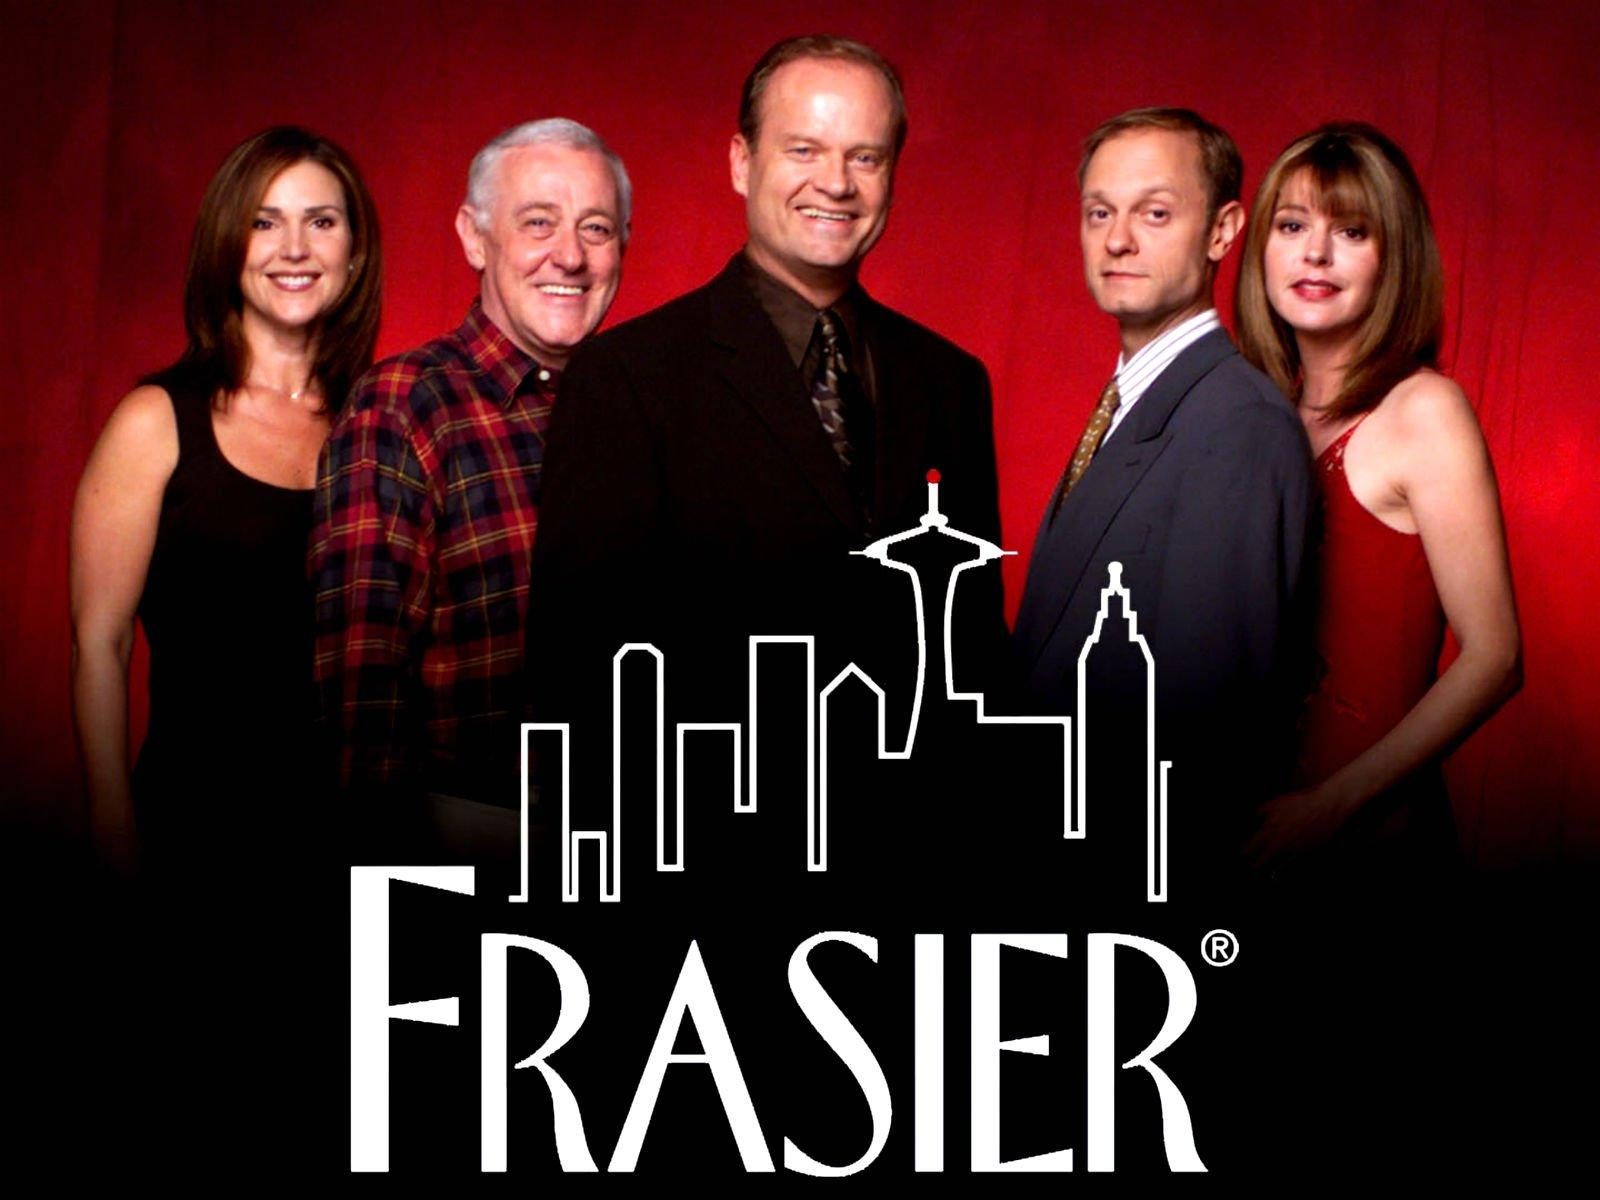 FRASIER comedy sitcom series poster wallpapers